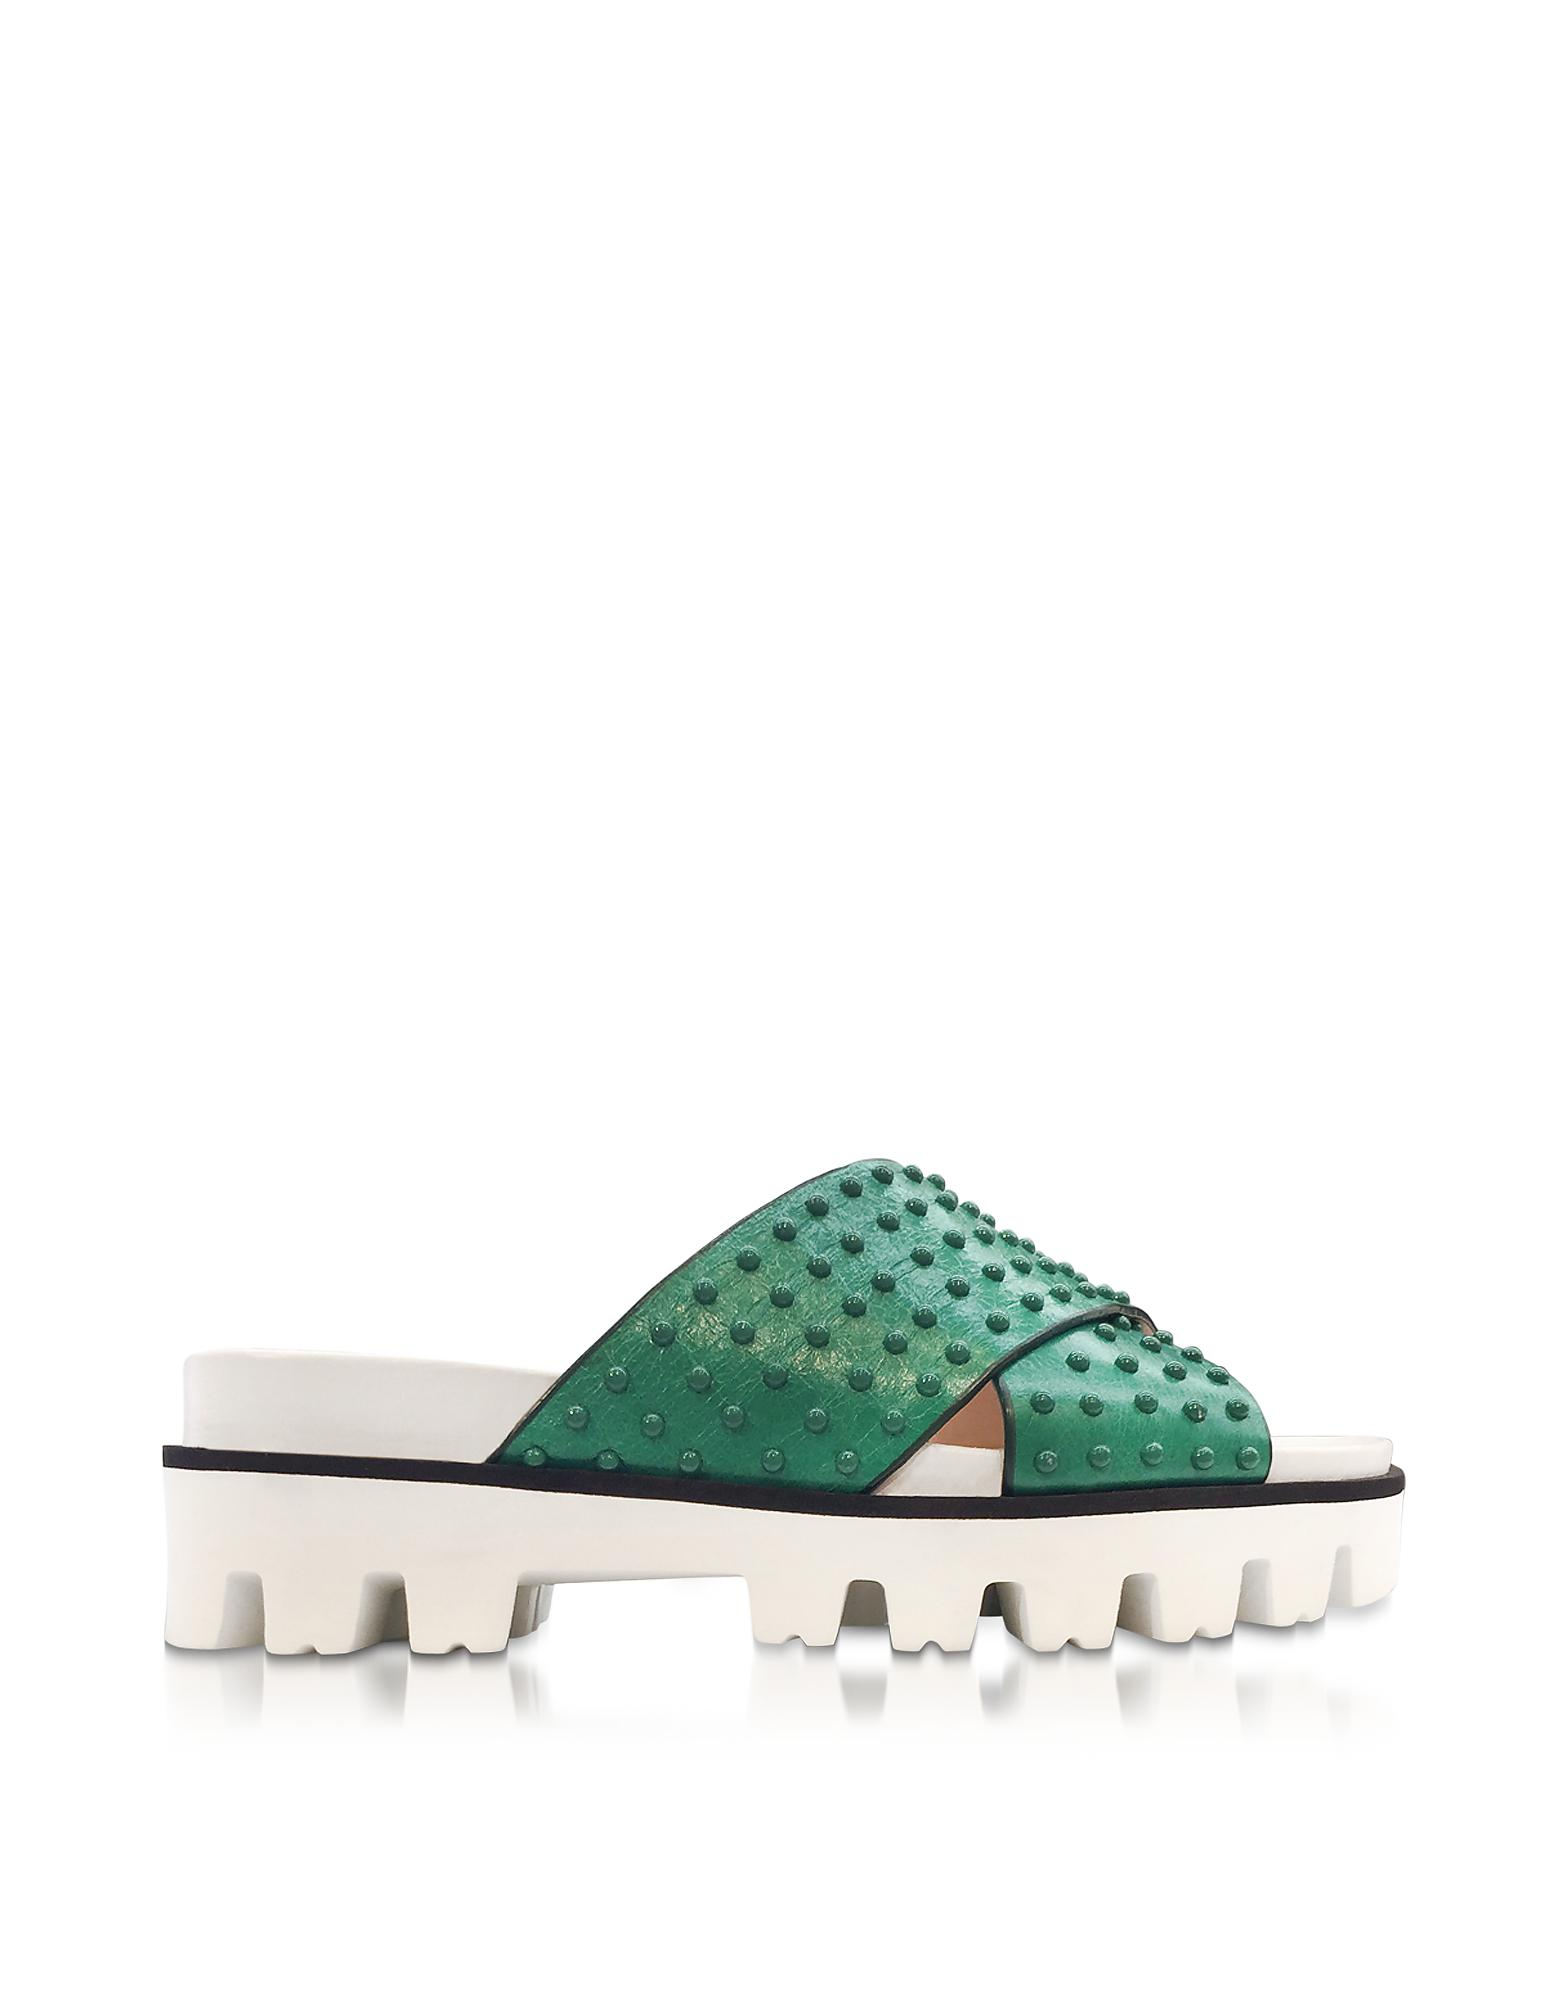 Buy Best 2018 For Sale RED Valentino Green Leather Slide Sandals W-studs Amazing Price Very Cheap For Sale Free Shipping Big Sale snNtqXtE